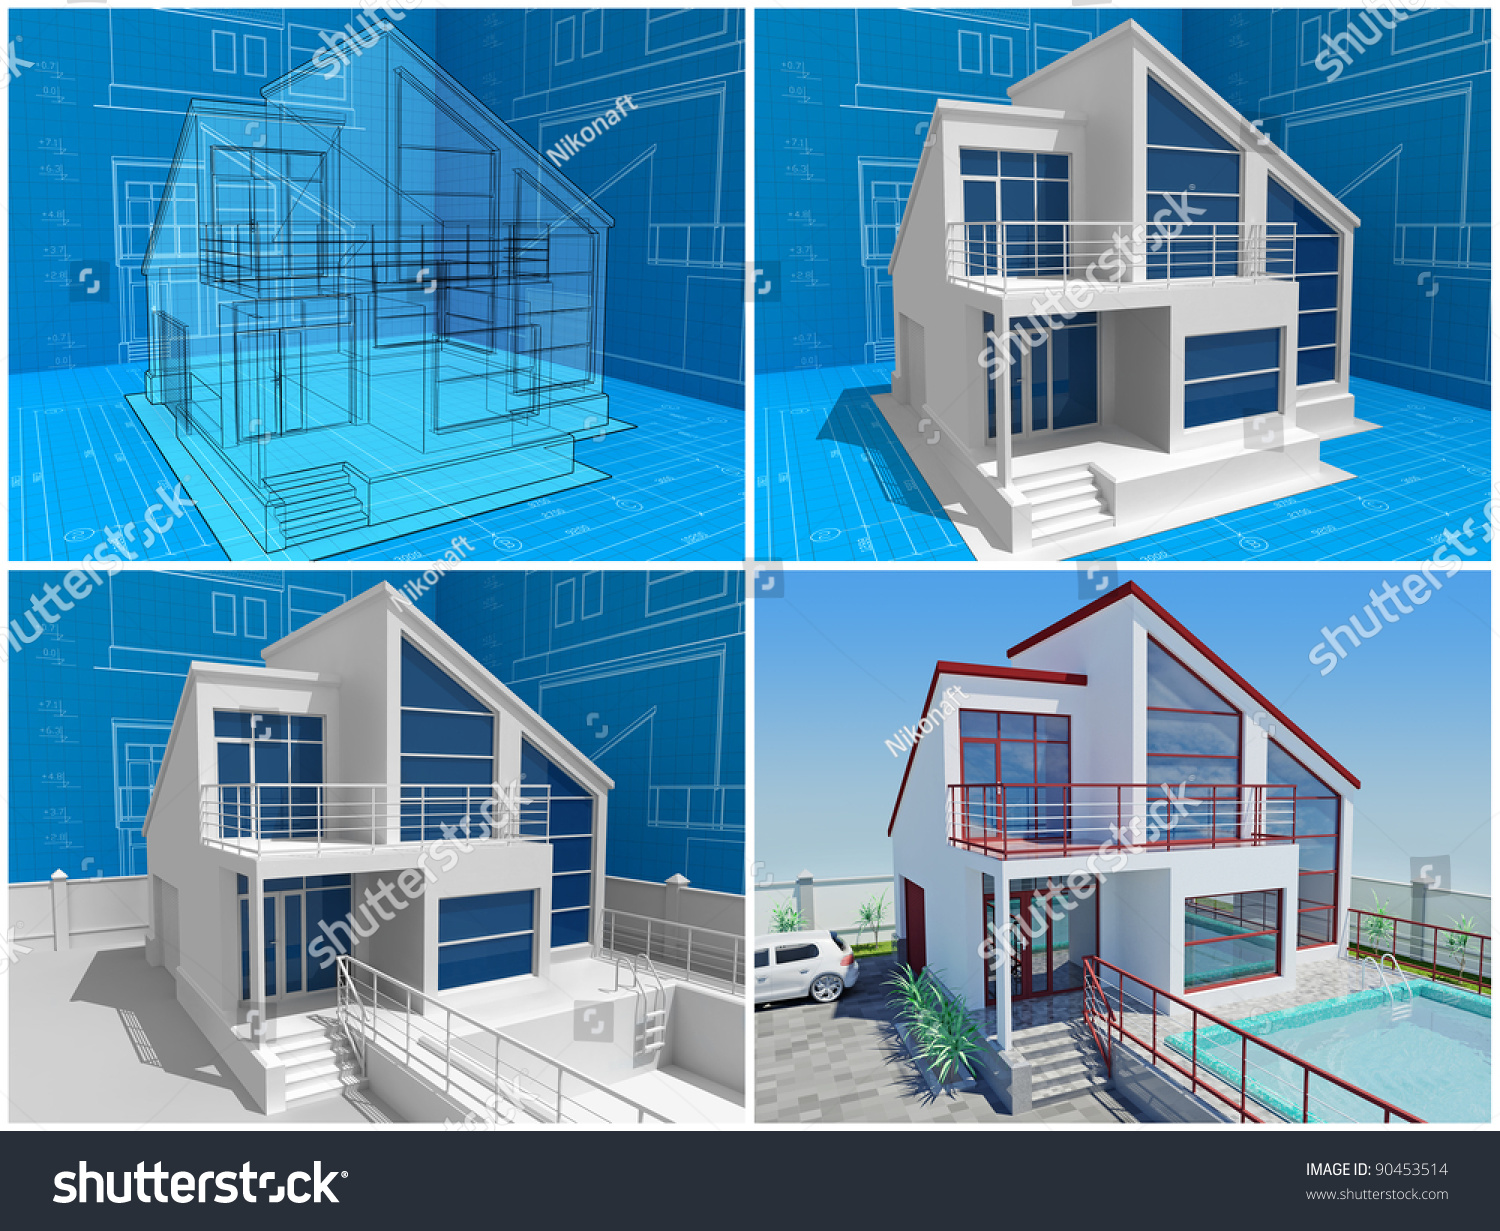 the cottage under construction  3d isometric view of